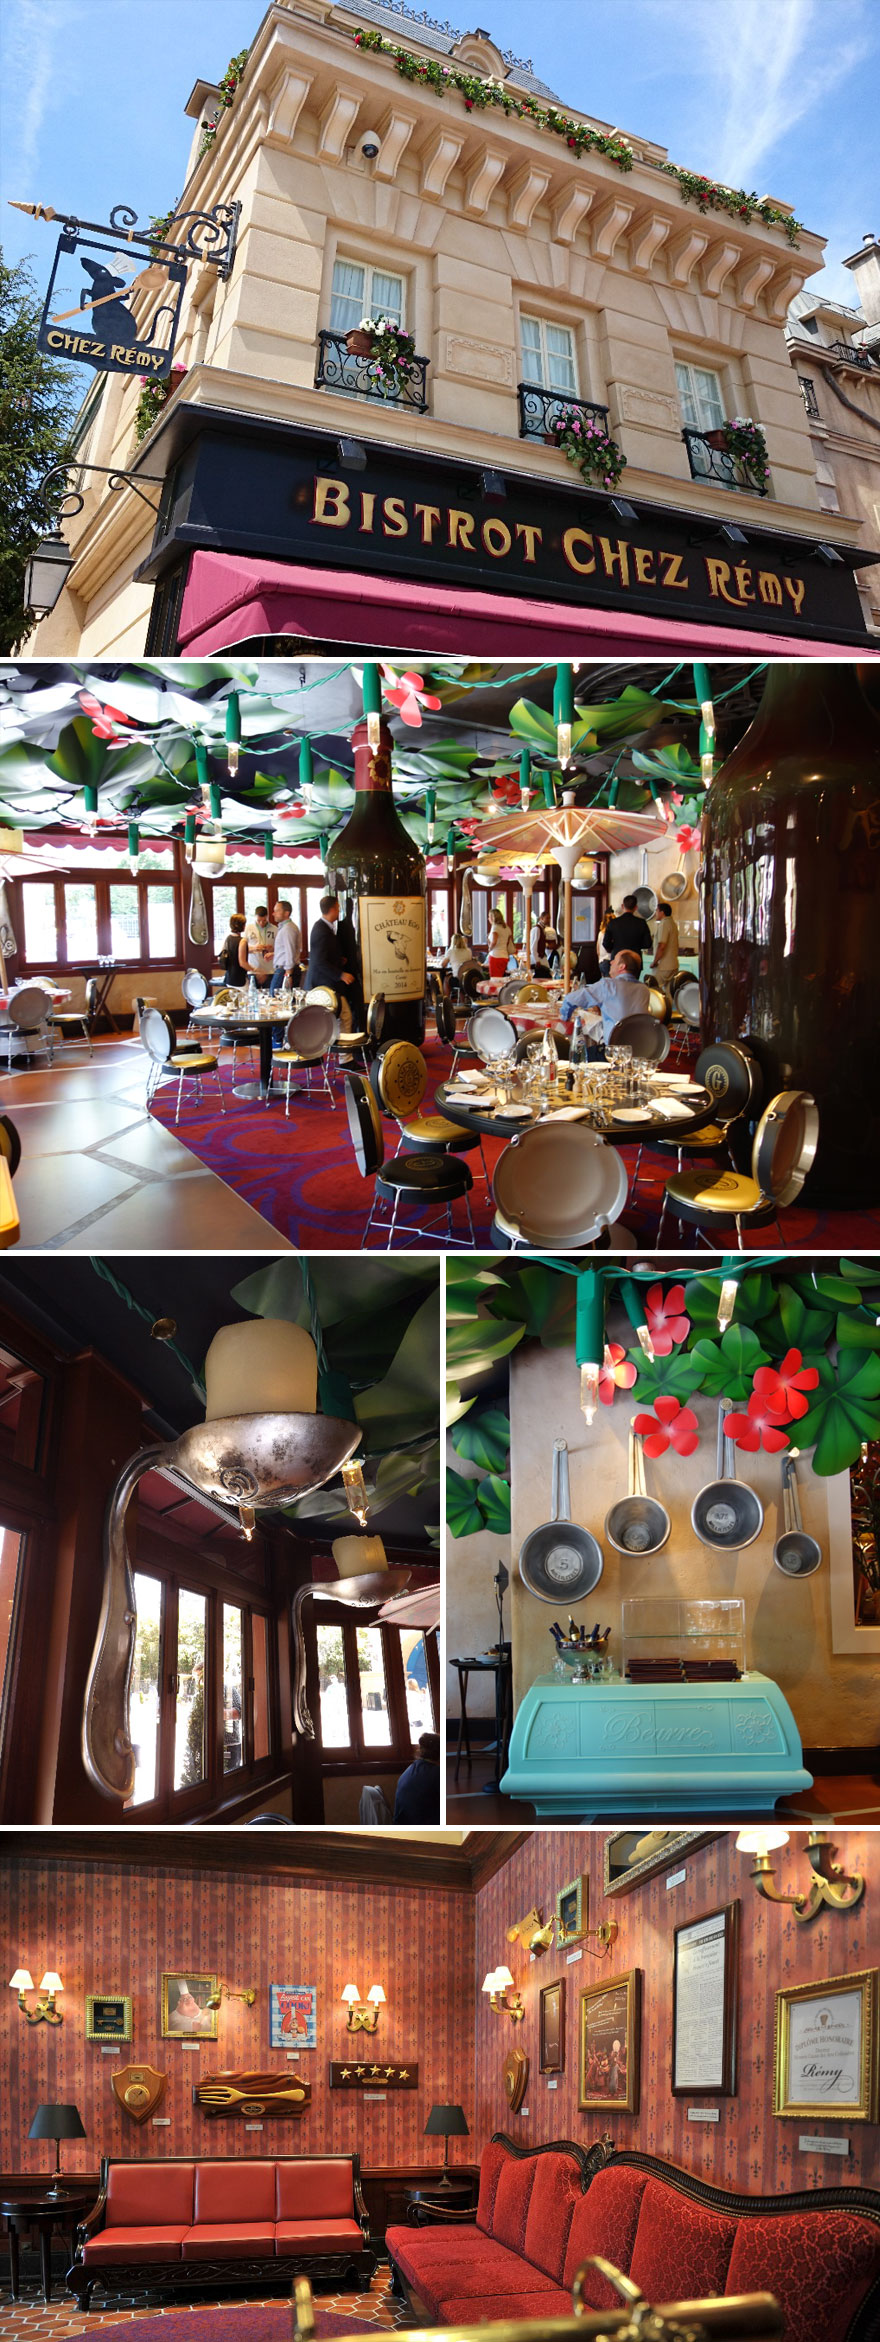 Ratatouille Themed Restaurant, Bistrot Chez Rémy, Disneyland Paris, France